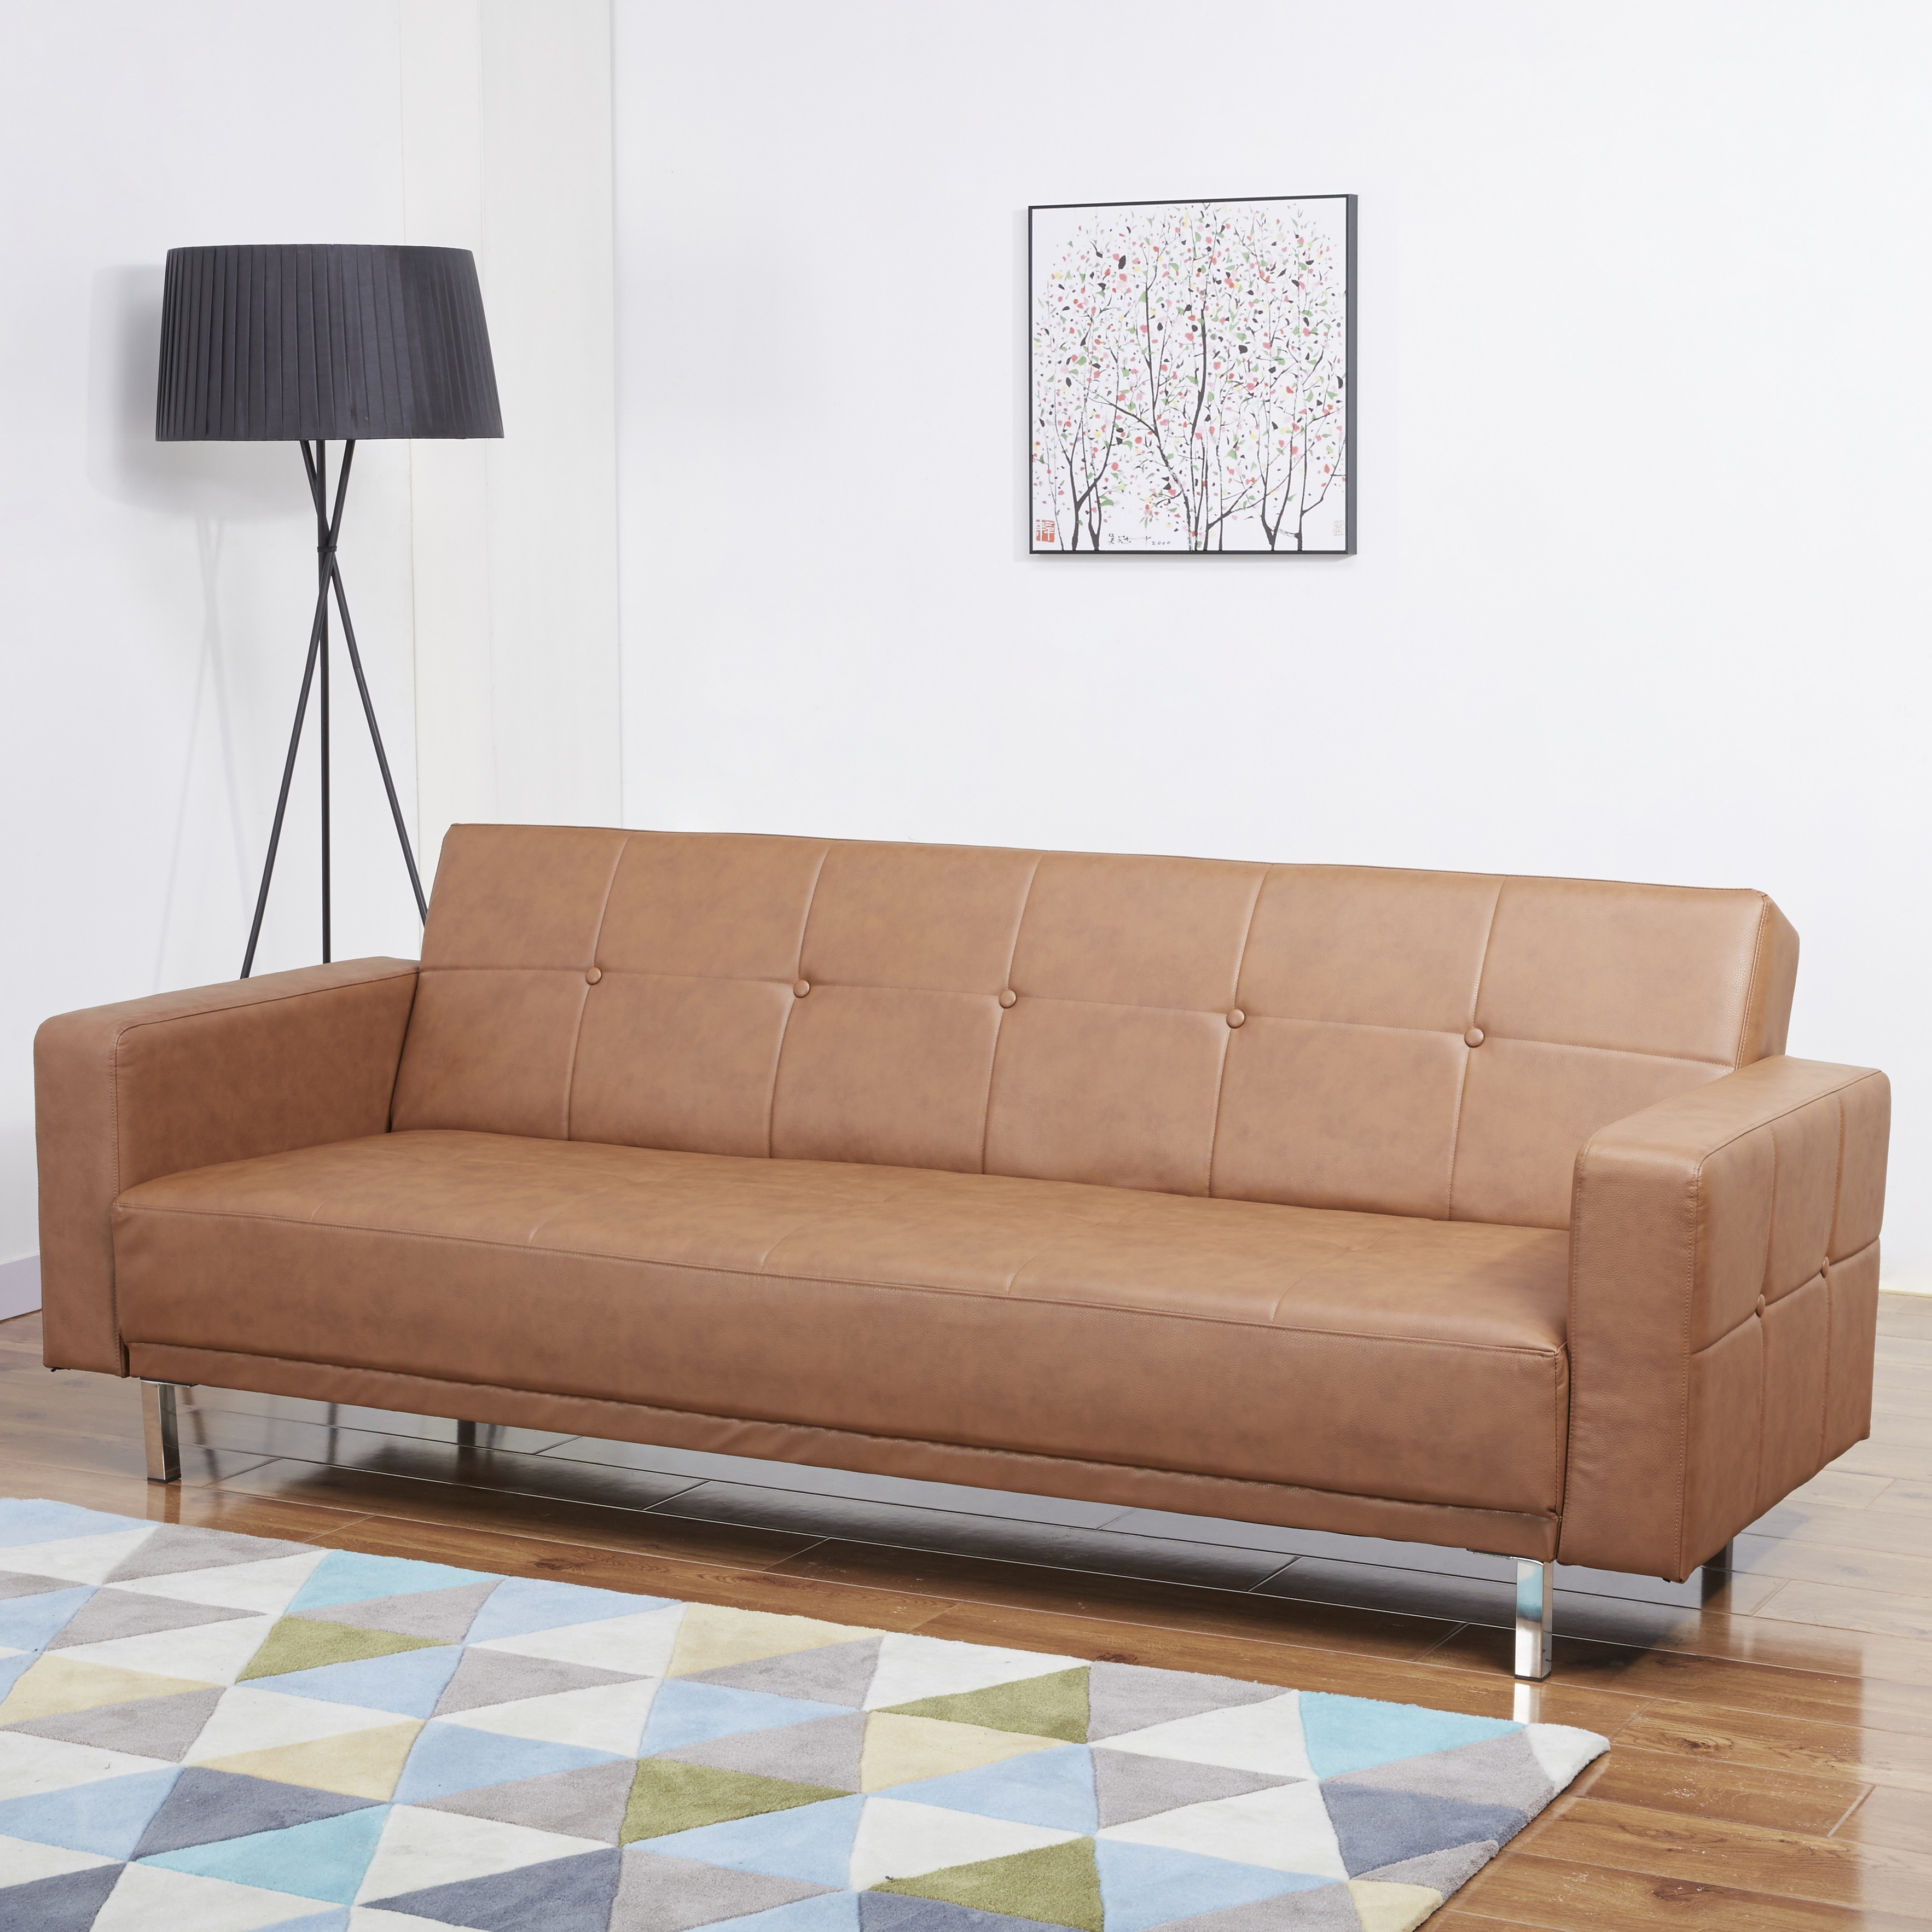 Photo of Lux 3 seater vintage brown leather sofa bed